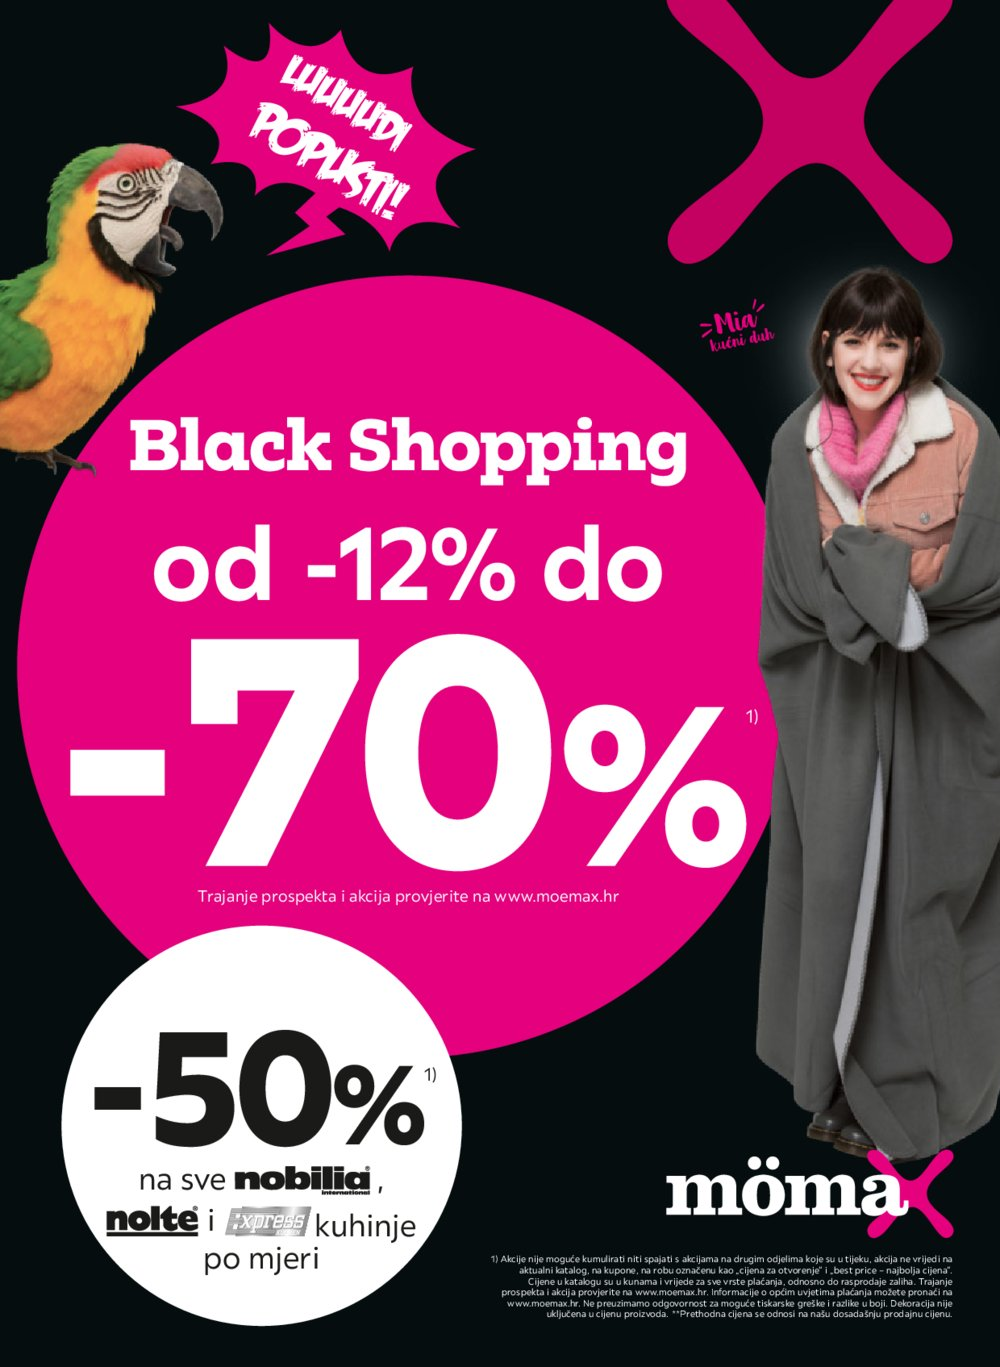 Momax katalog Black shopping 19.11.-30.11.2020.